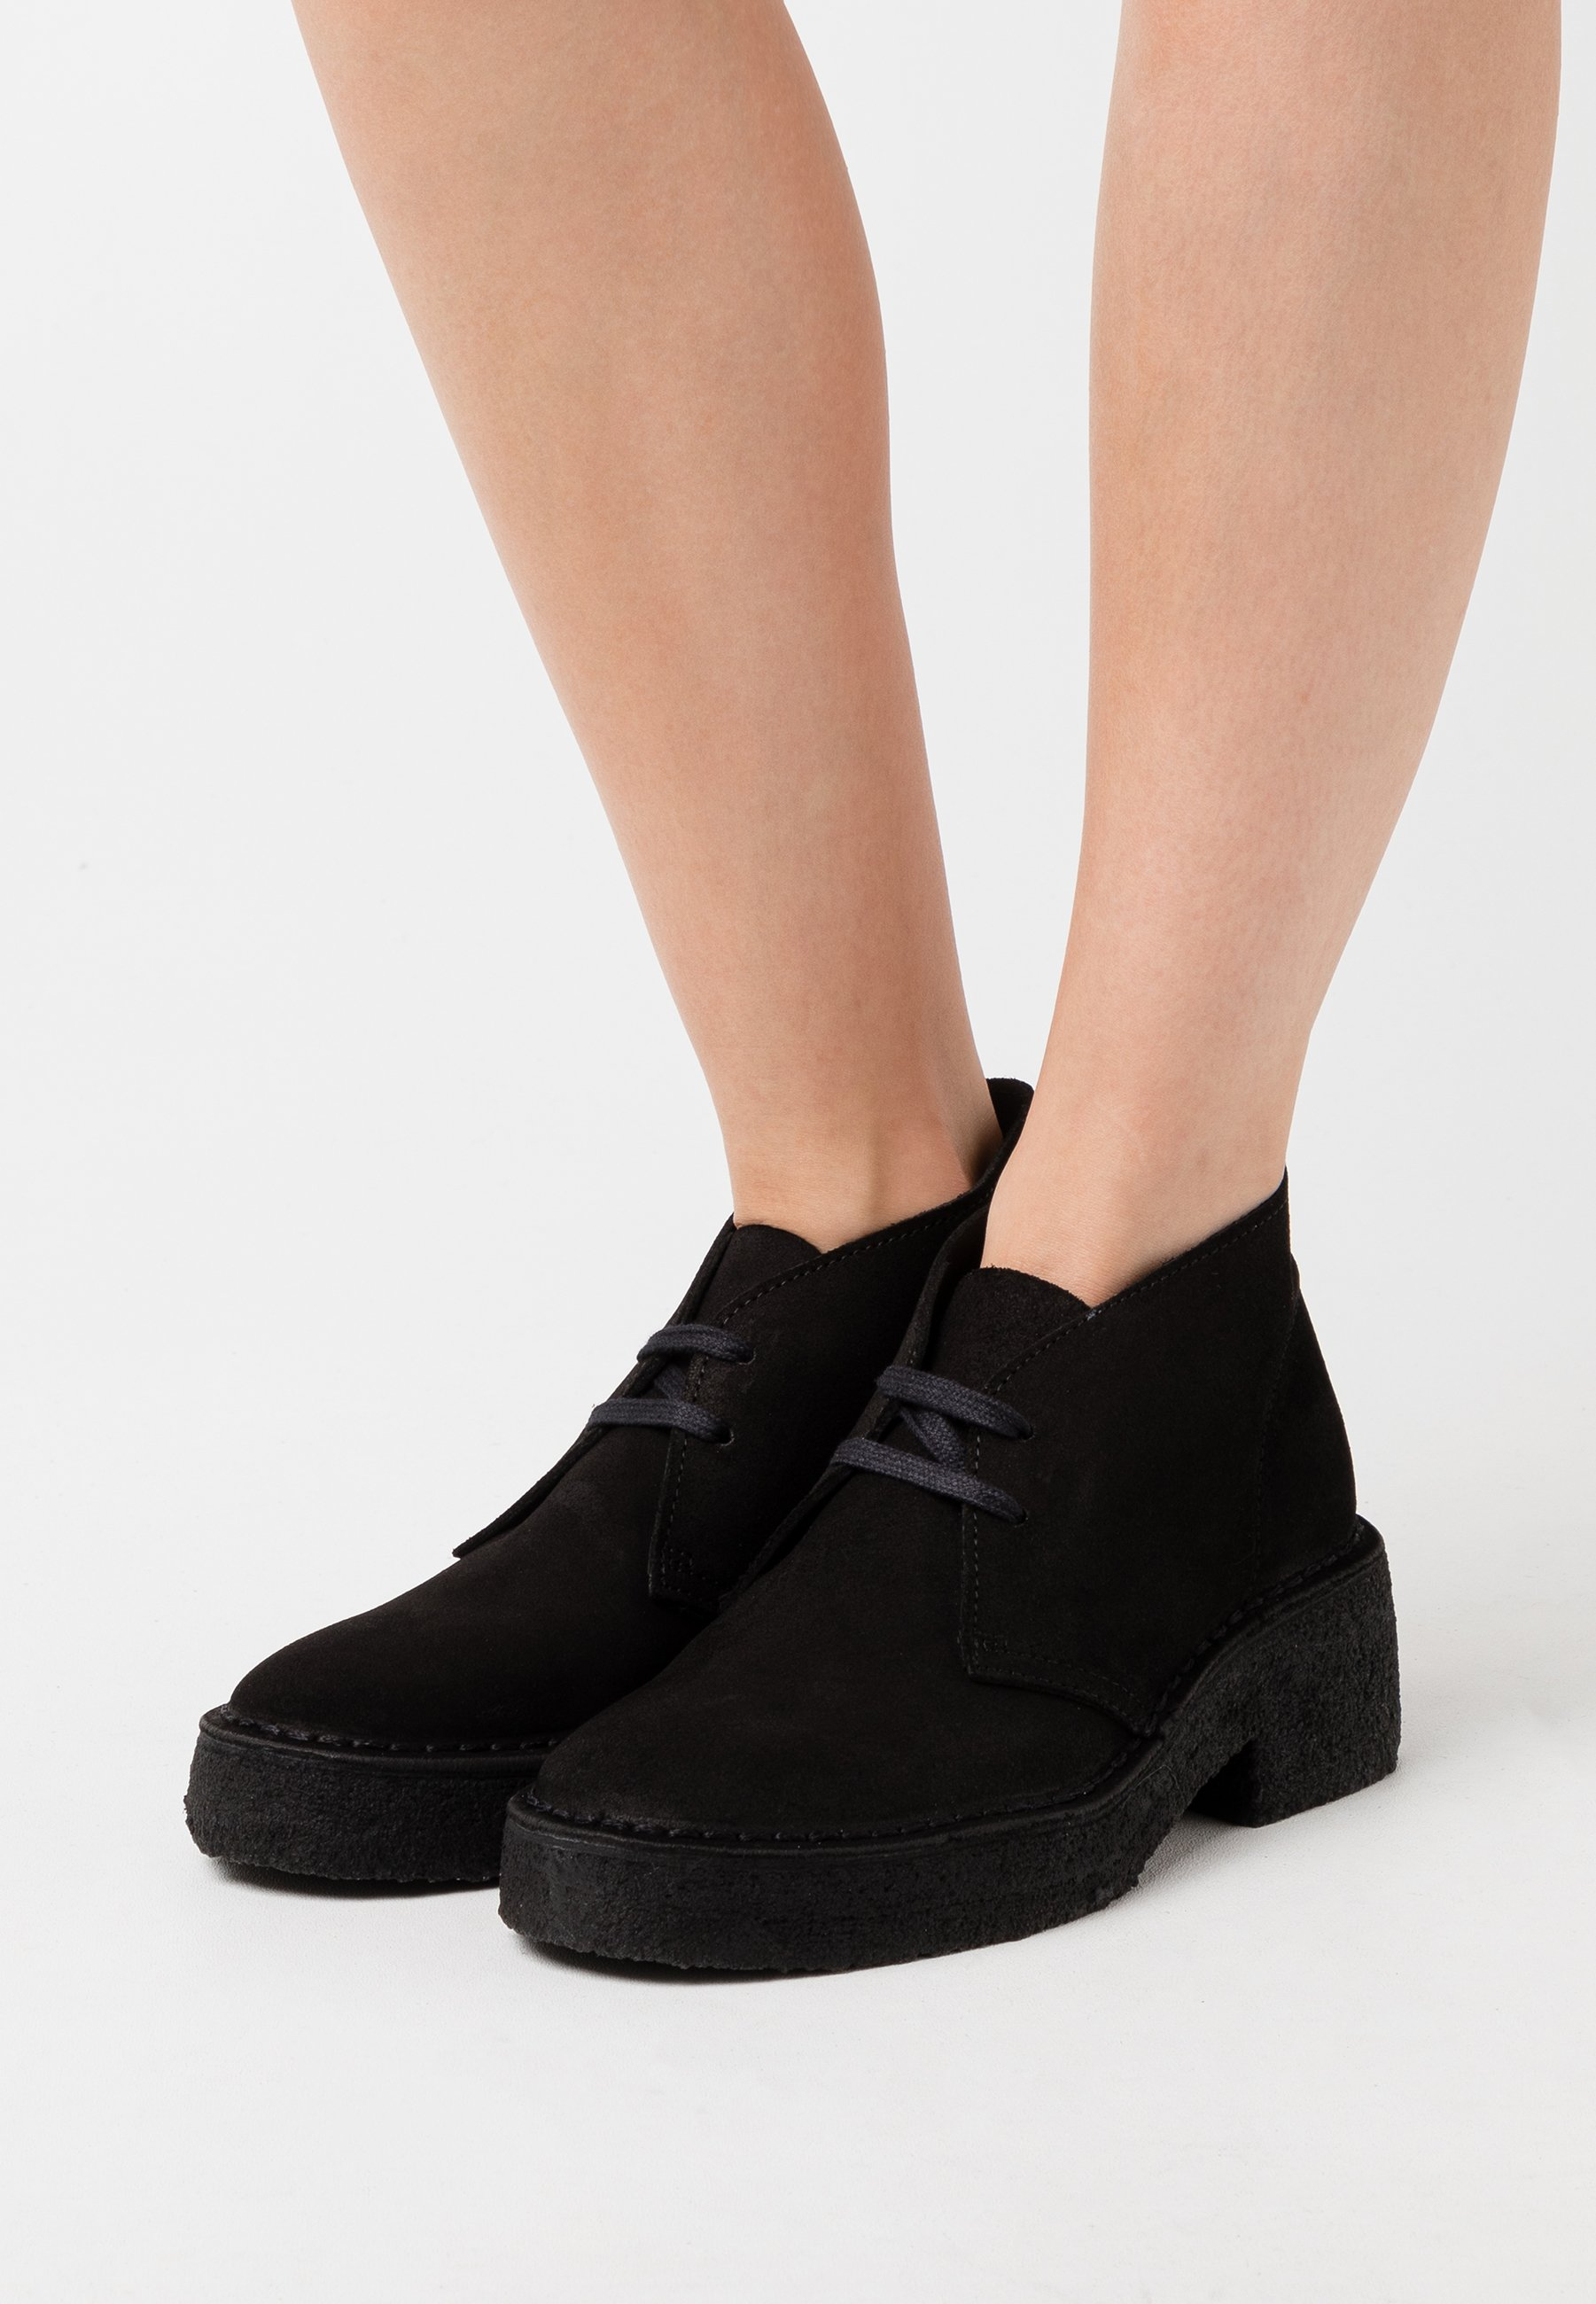 oferta márketing Presunto  Clarks Originals ARISA DESERT - Platform ankle boots - black - Zalando.co.uk